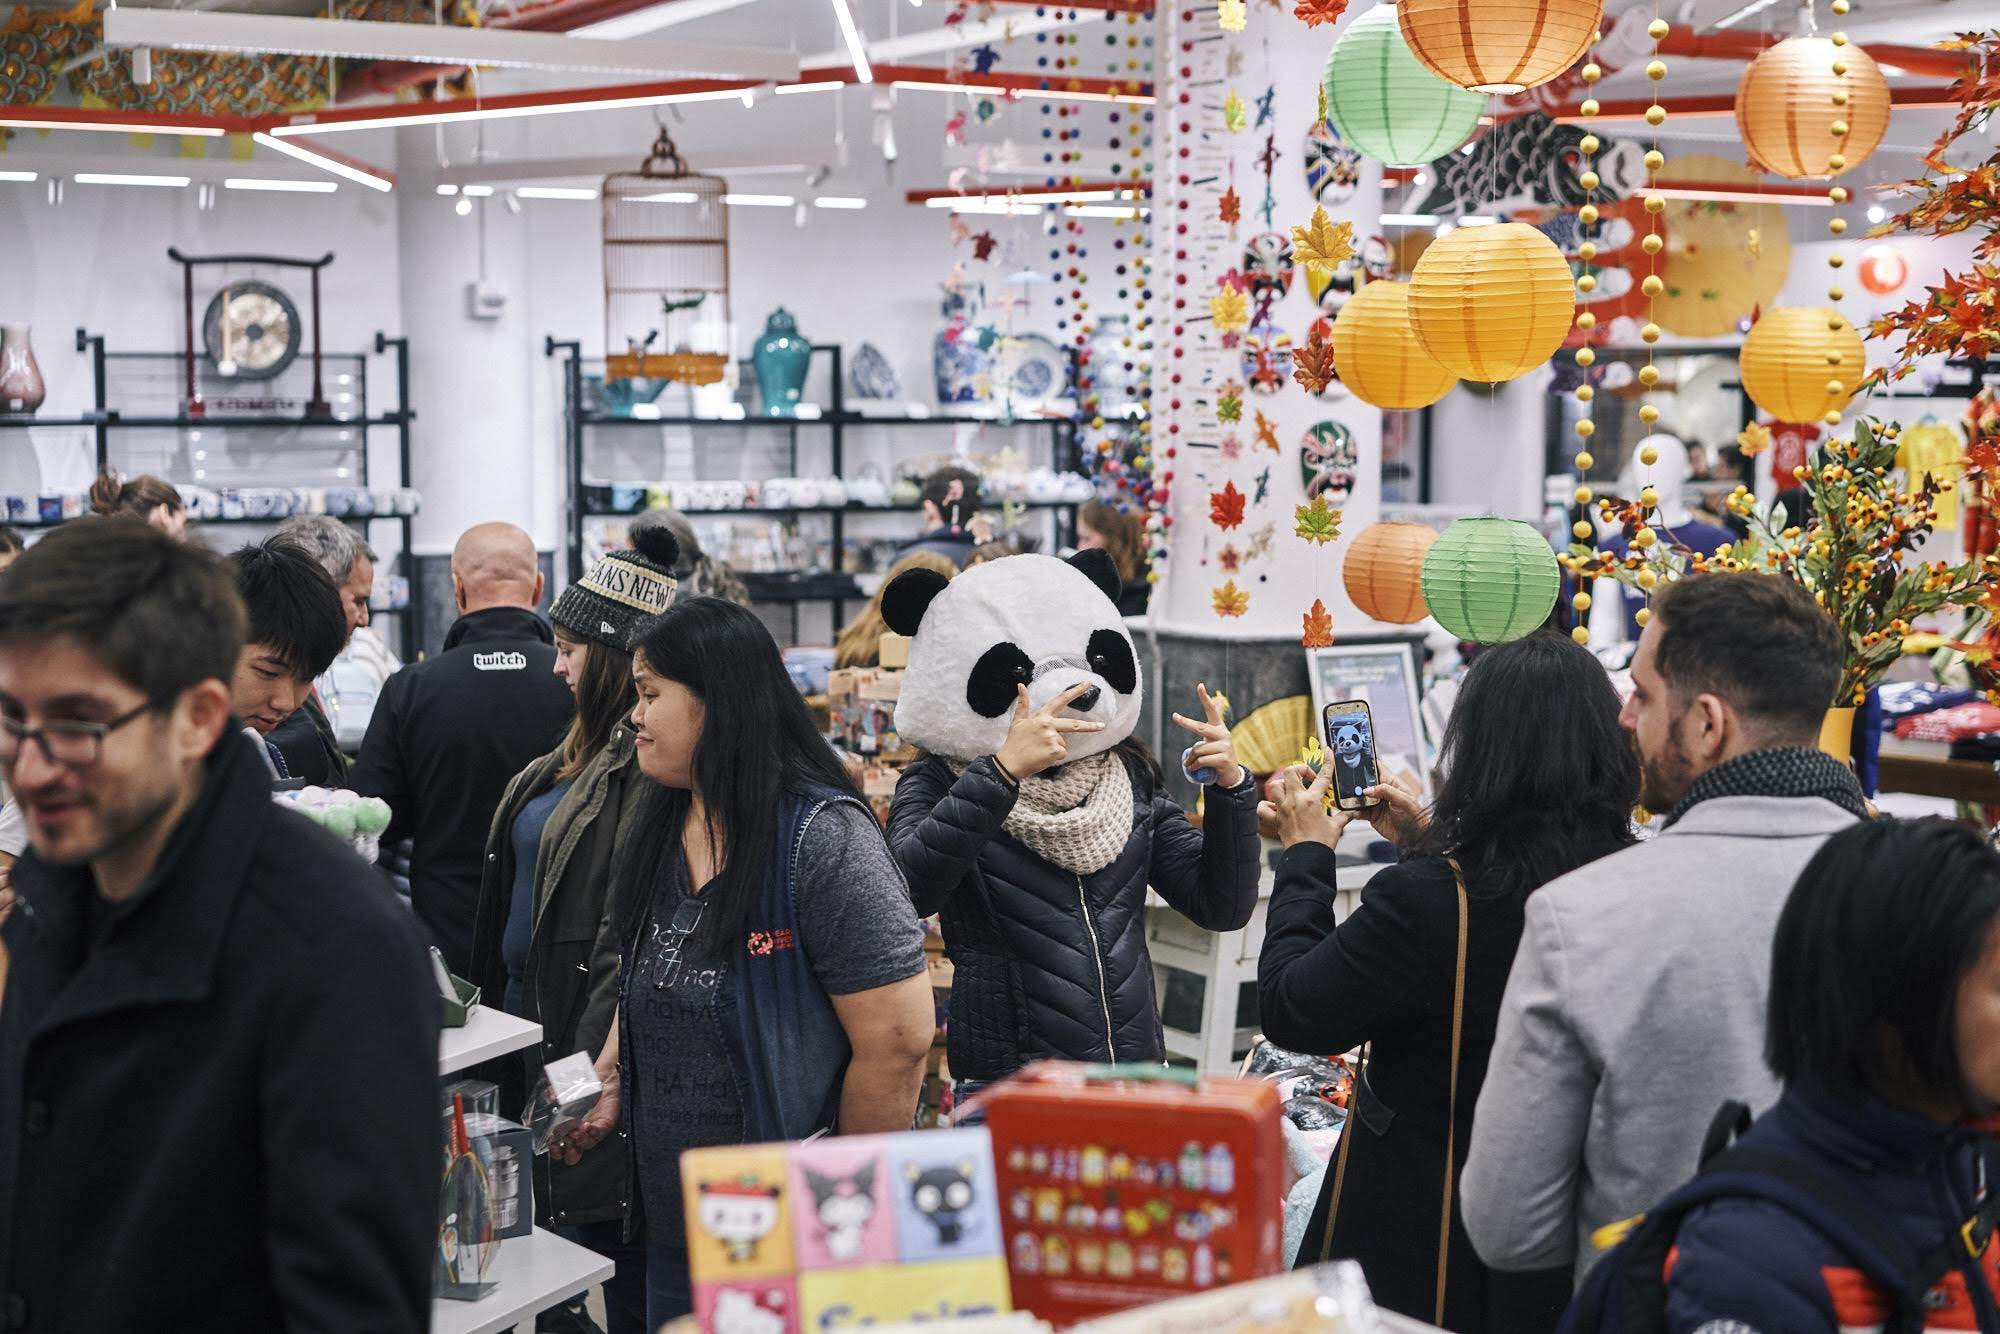 A typical -- and very crowded -- Saturday afternoon in the Chelsea Market store, complete with panda head pics.